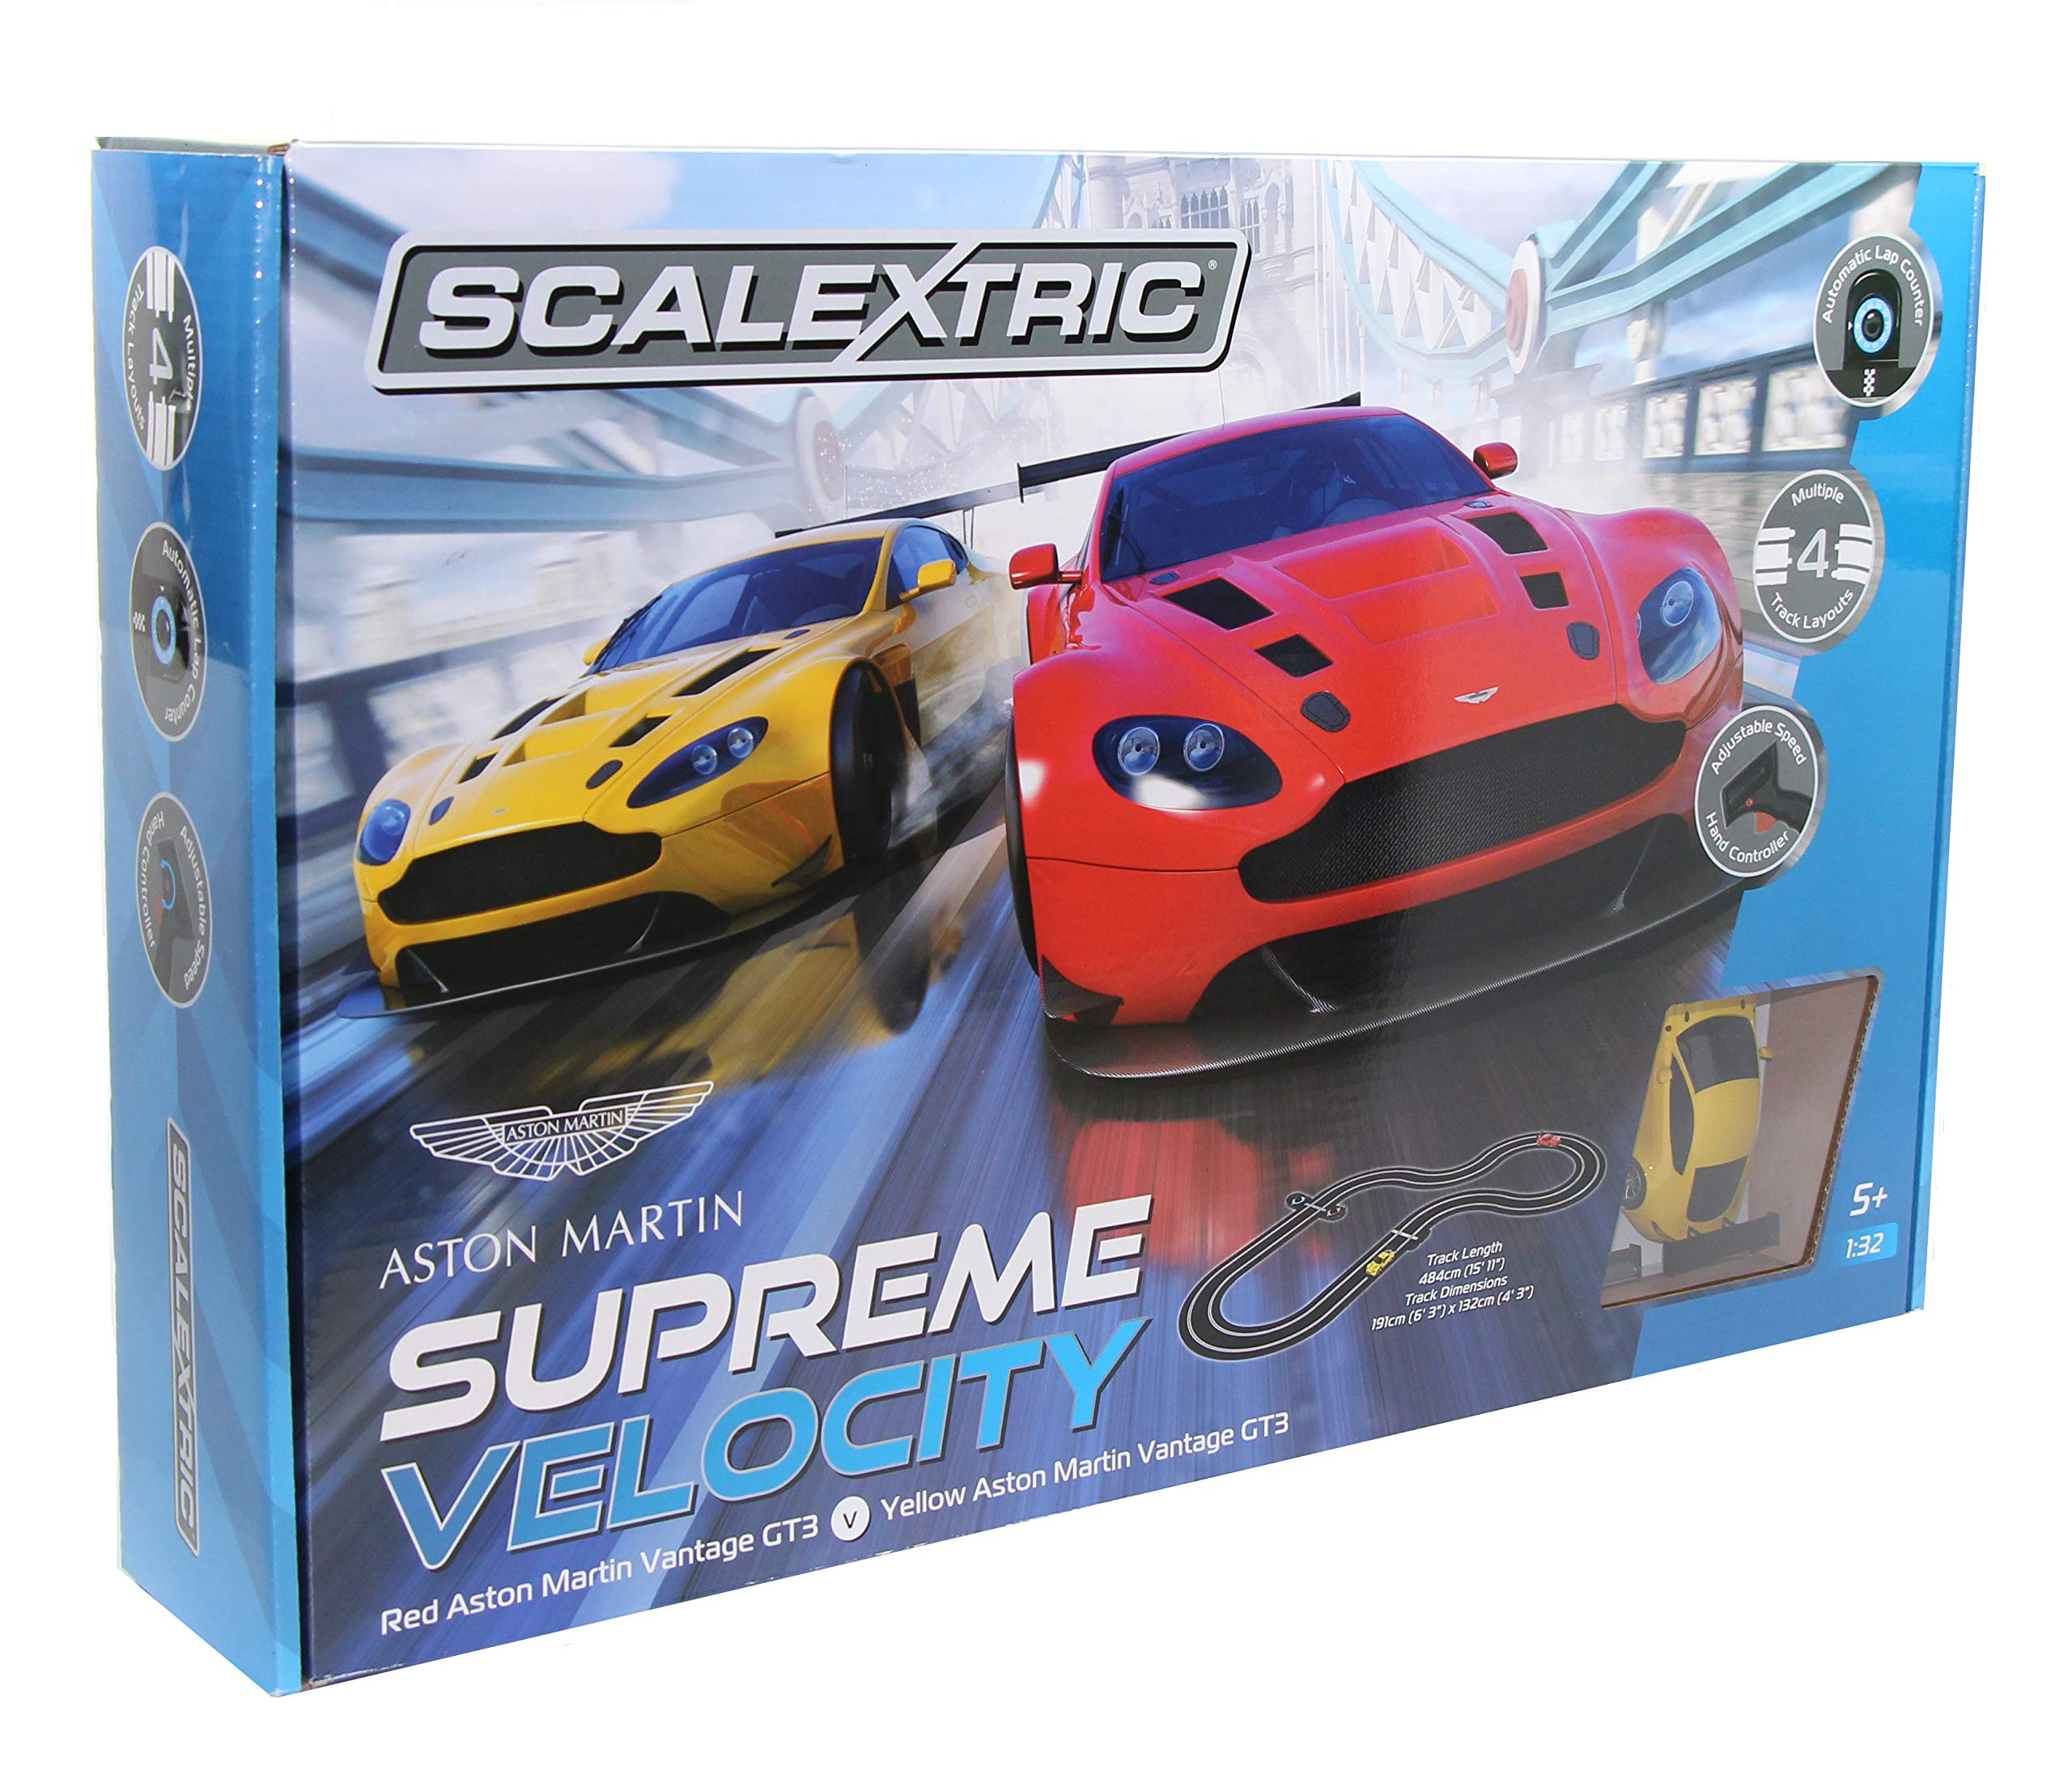 Scalextric Supreme Velocity Aston Martin Gt3 Race Car Track Set Very Hard To Find Buy Online In Bahamas At Bahamas Desertcart Com Productid 125384923